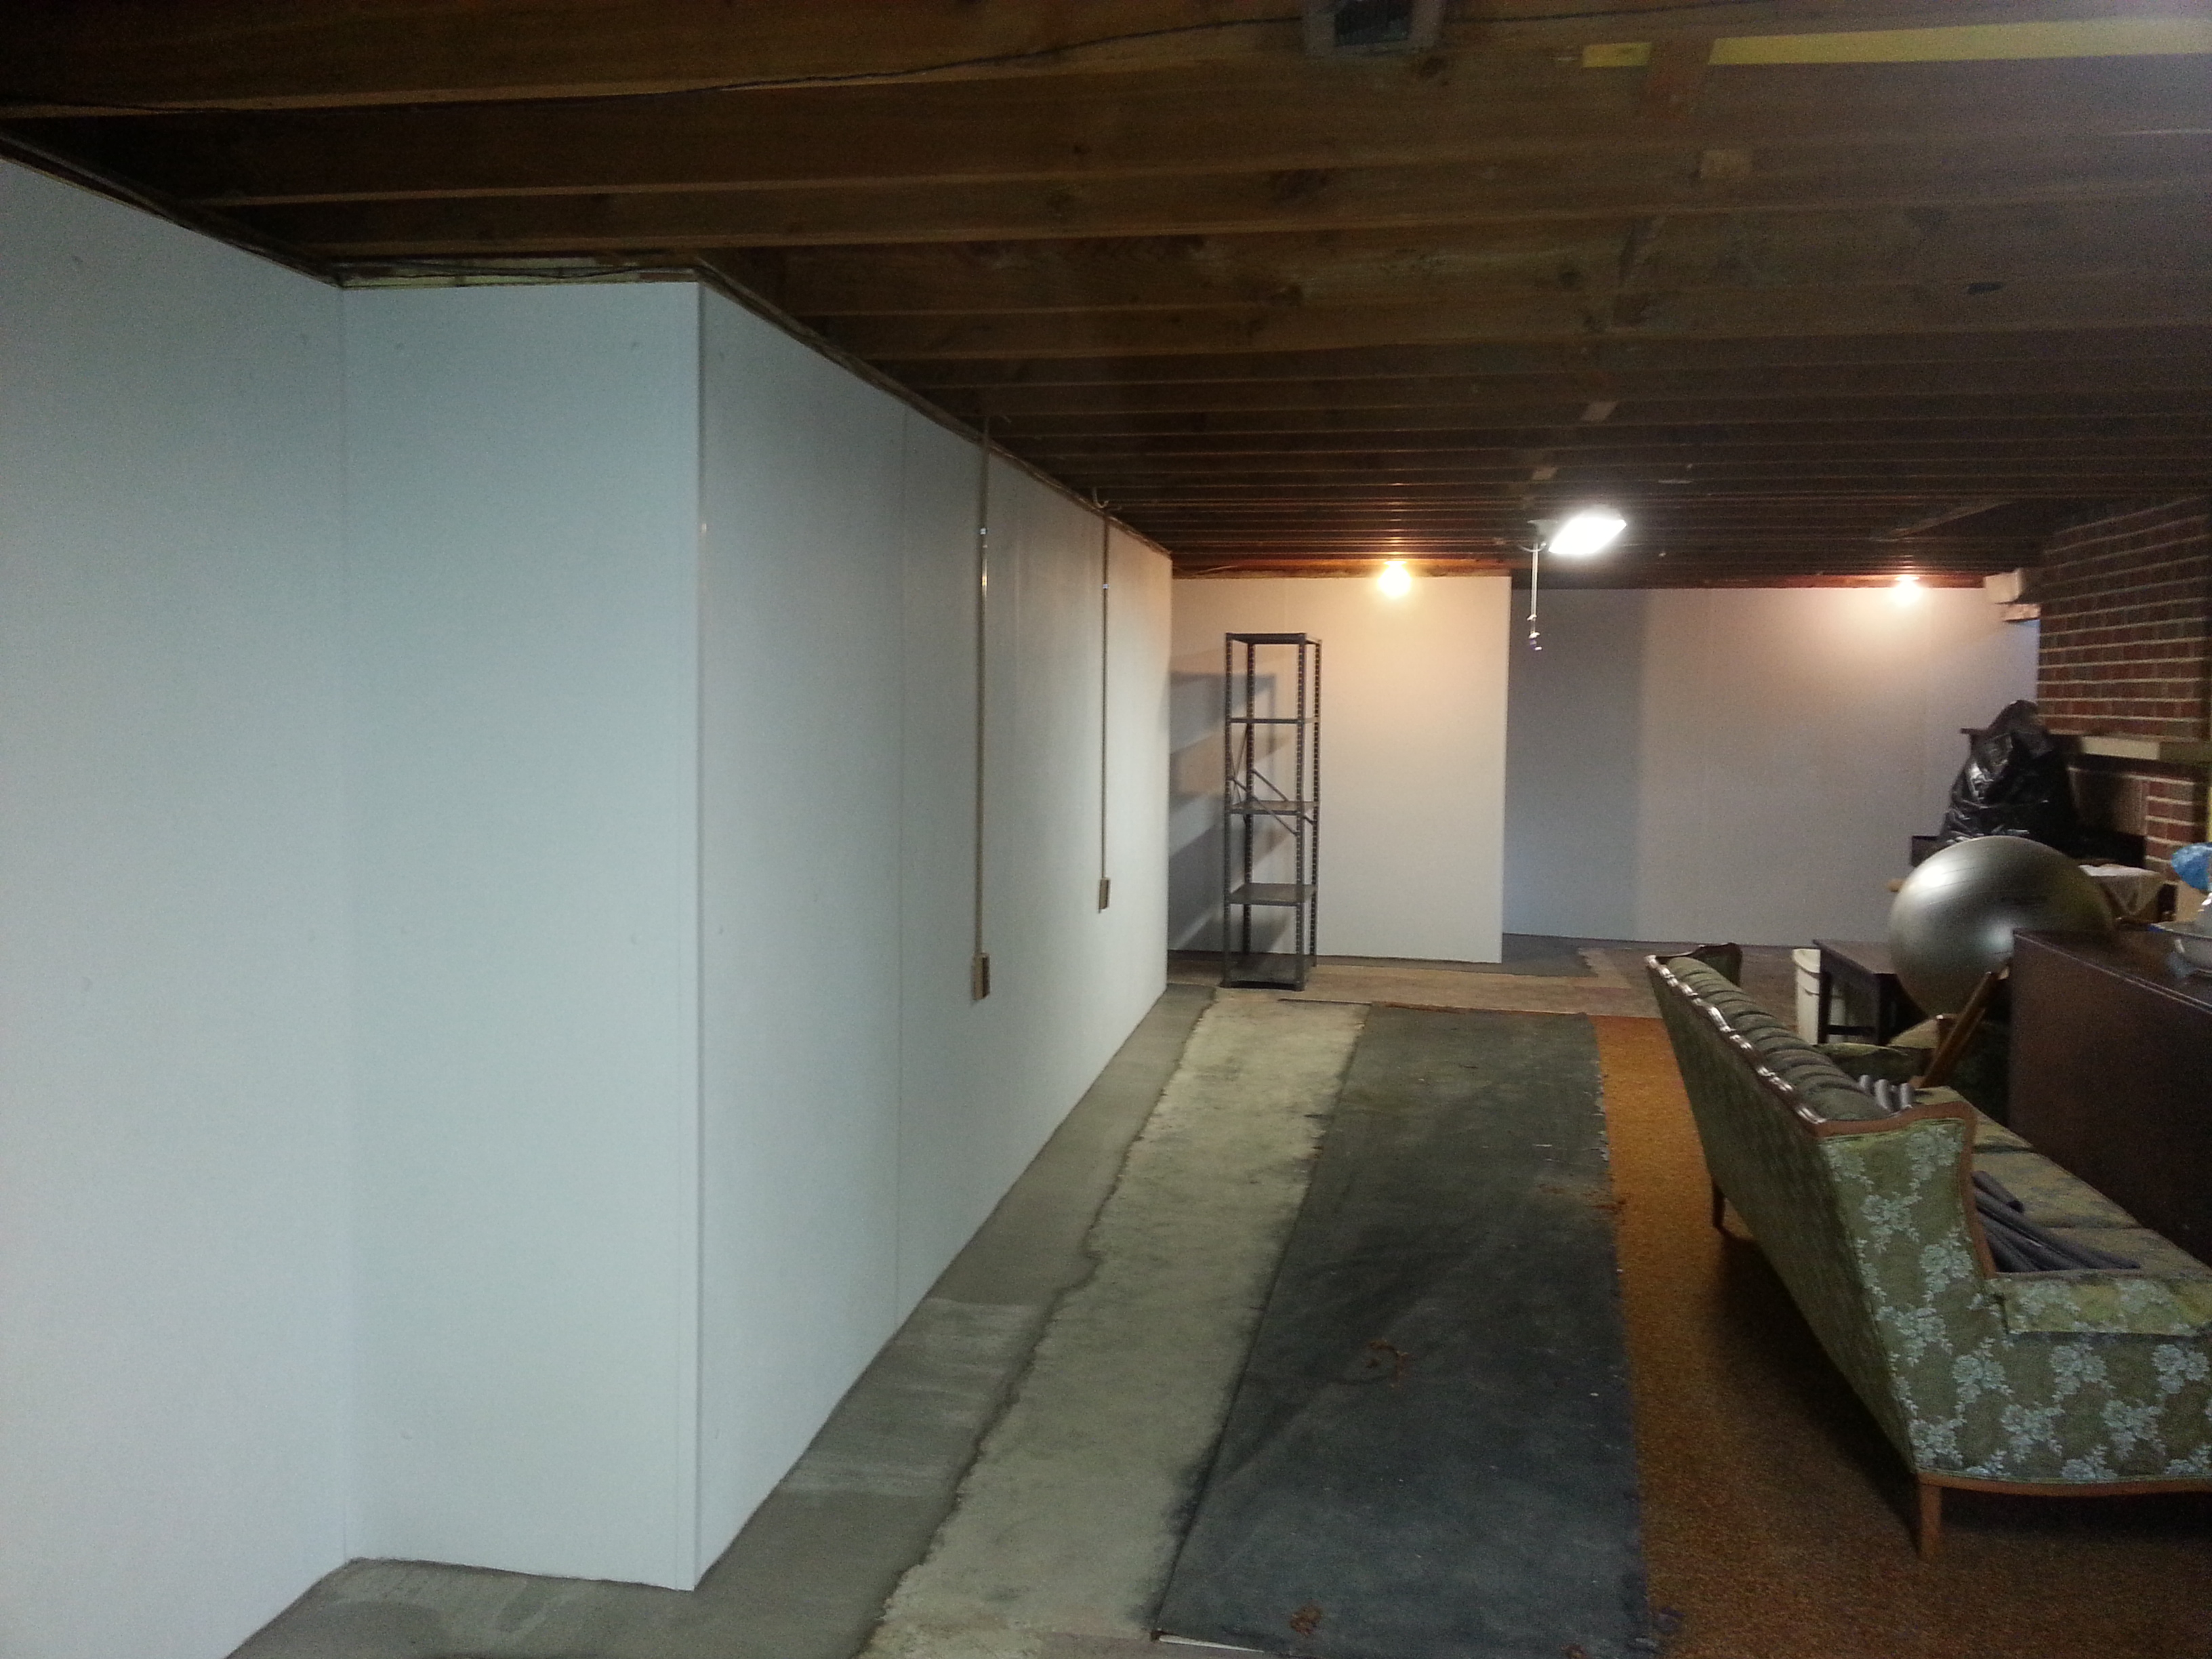 Merveilleux Interior Basement Waterproofing System